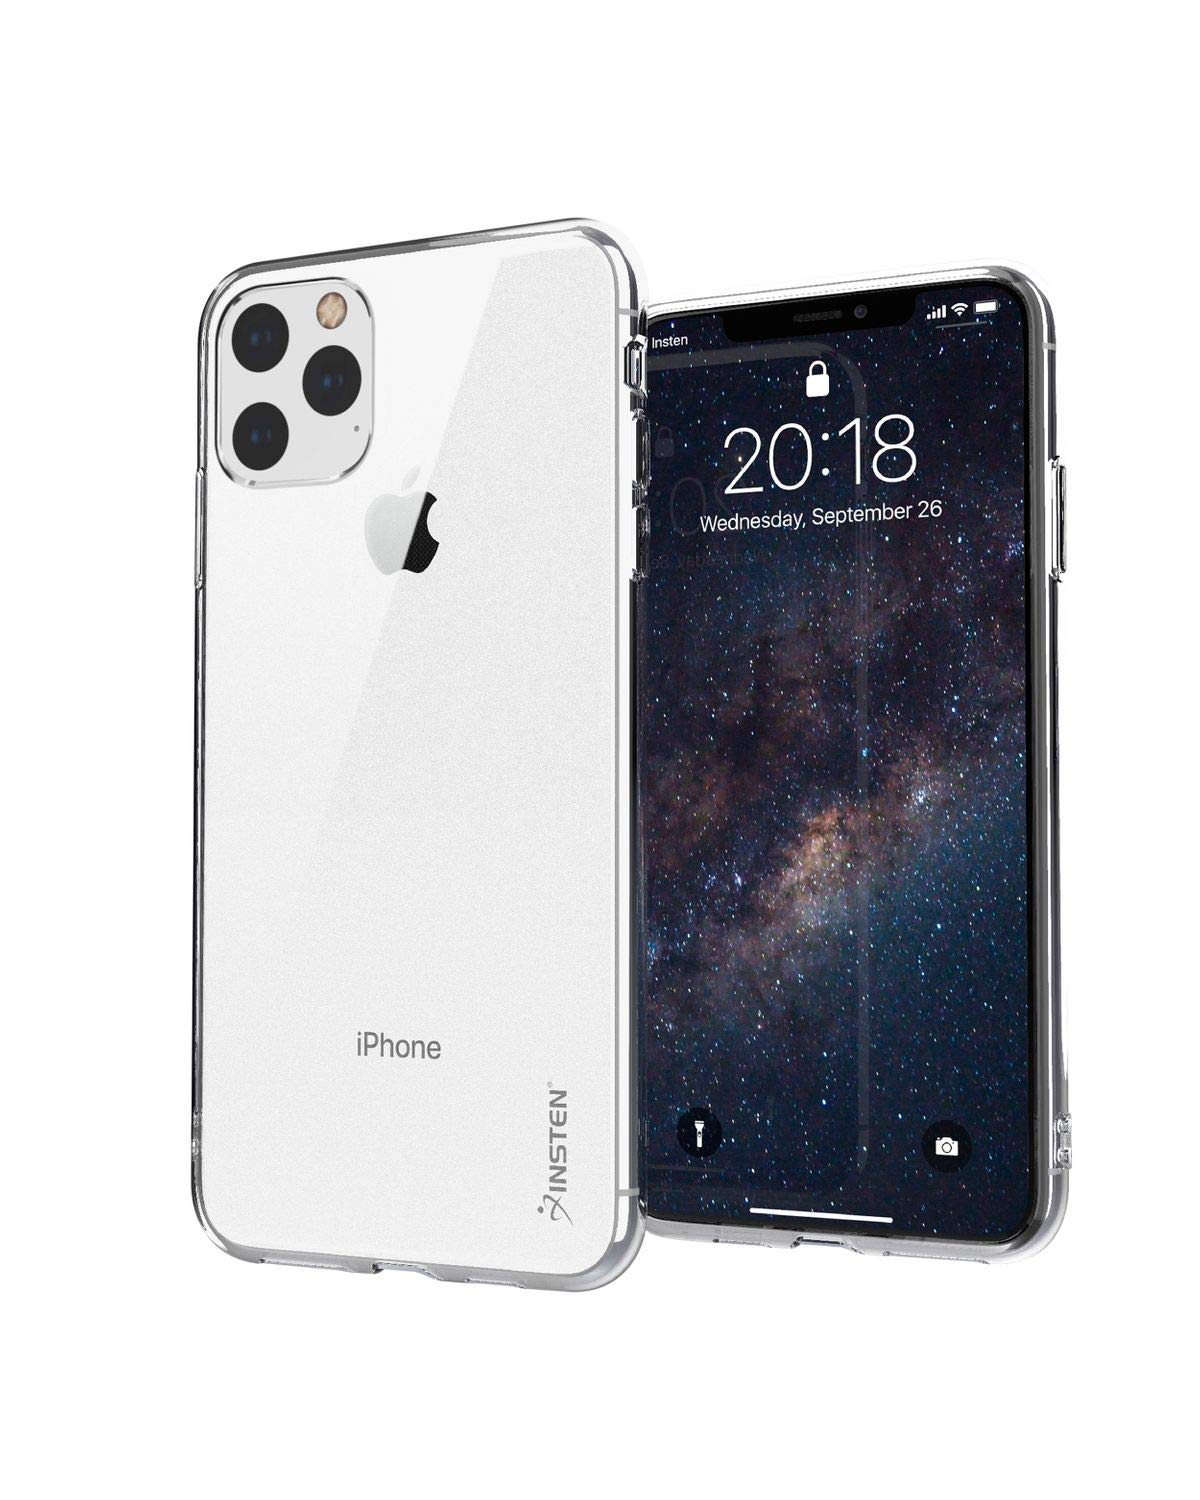 """Compatible with iPhone 11 Pro Max Clear Case, Insten Crystal Ultra Slim Soft TPU Protective Cover Compatible with iPhone 11 Pro Max 6.5"""" [Reinforced Camera Lens Protection][Support Wireless Charging]"""